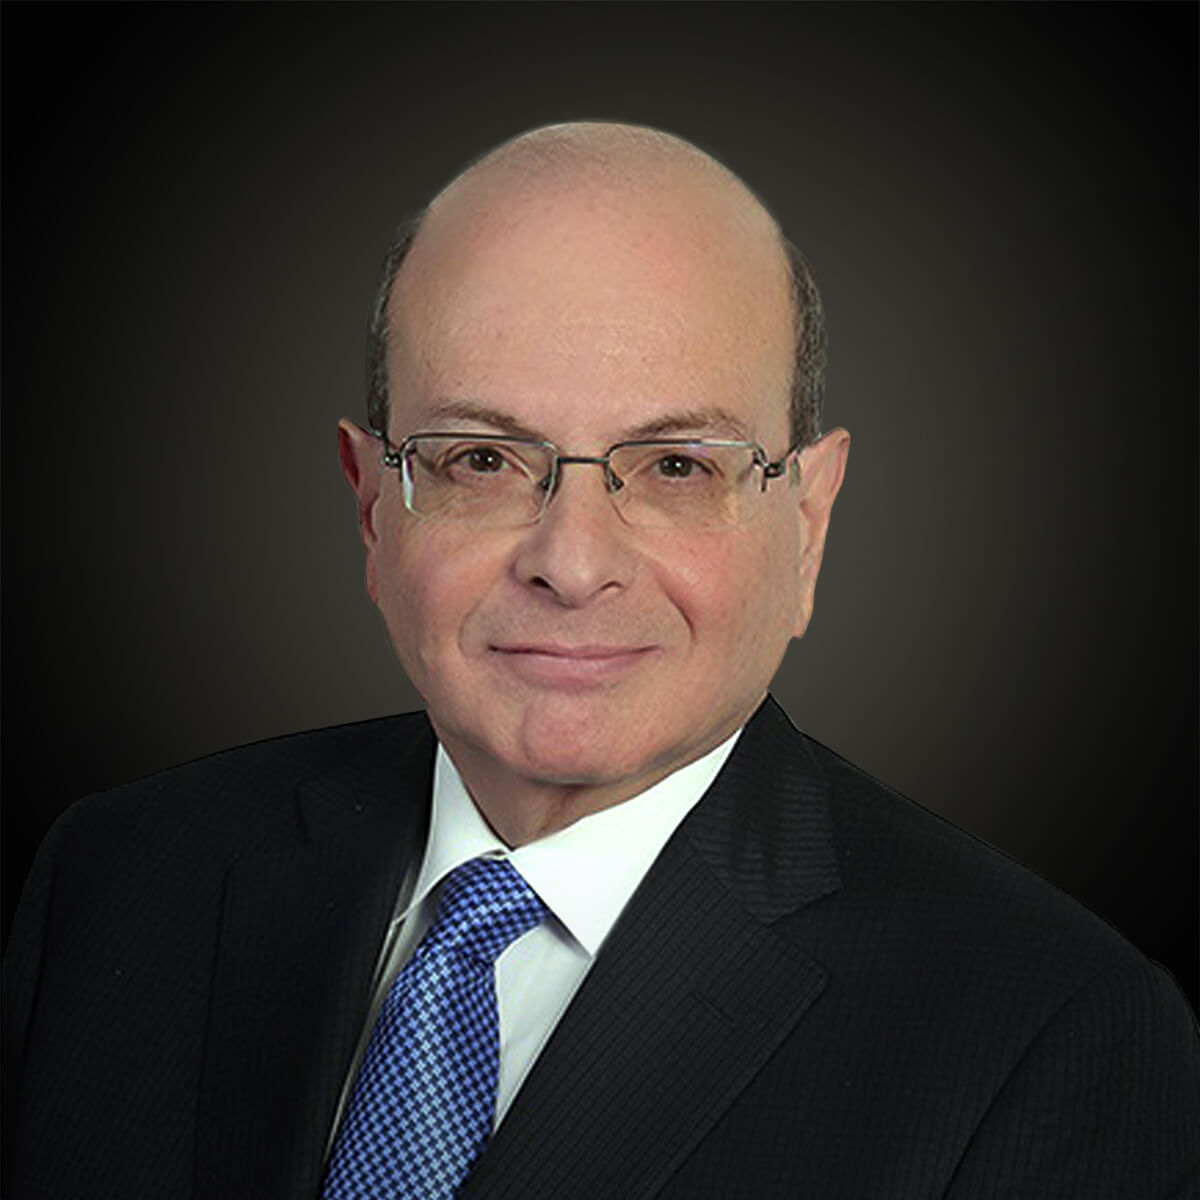 Nemeh Sabbagh has been the CEO of Arab Bank, one of the largest Arab banking networks in the world, since 2010.